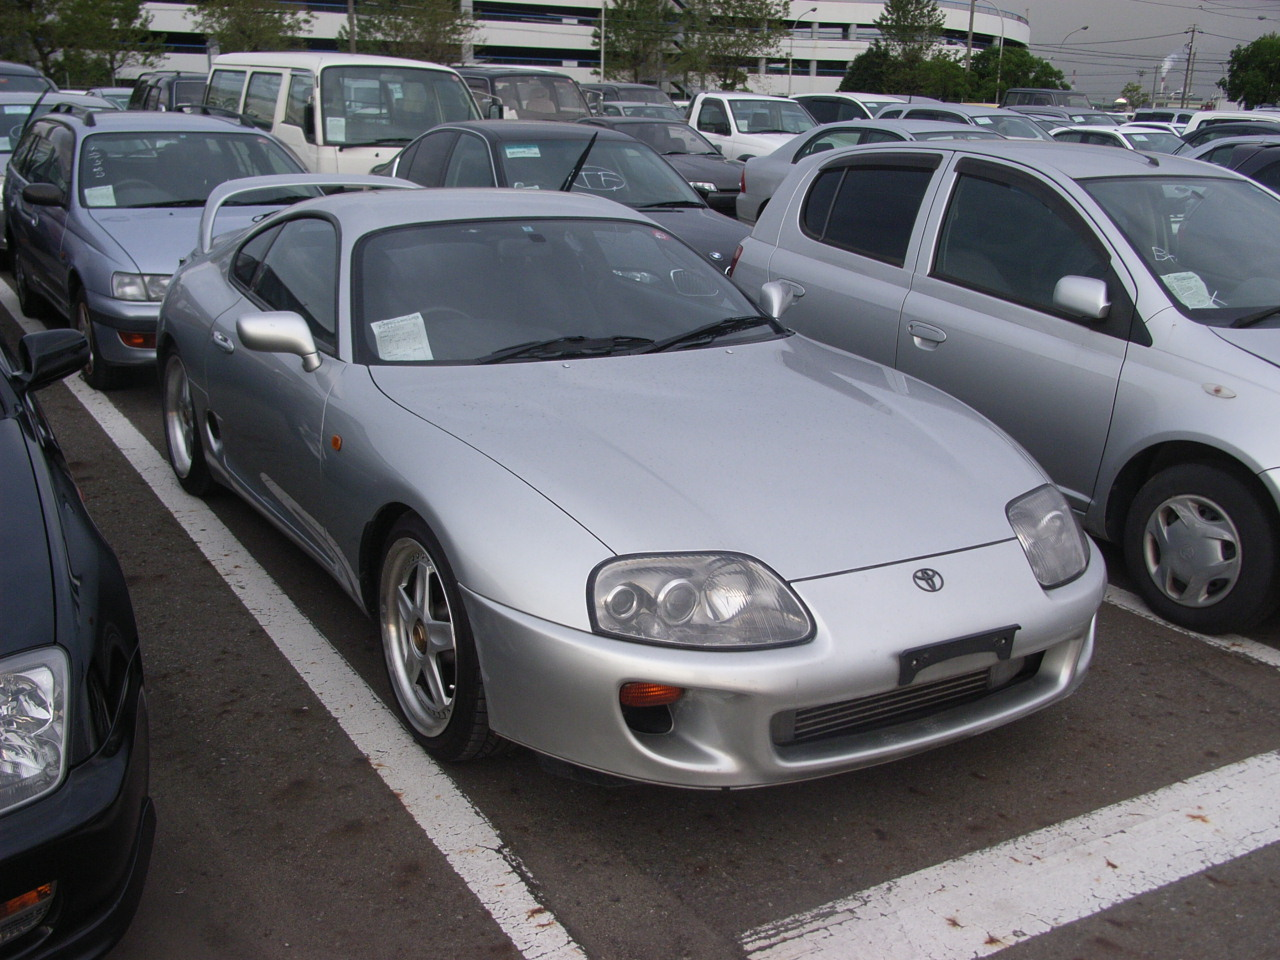 1995 Toyota Supra Rz S 3l Twin Turbo 6 Speed Manual